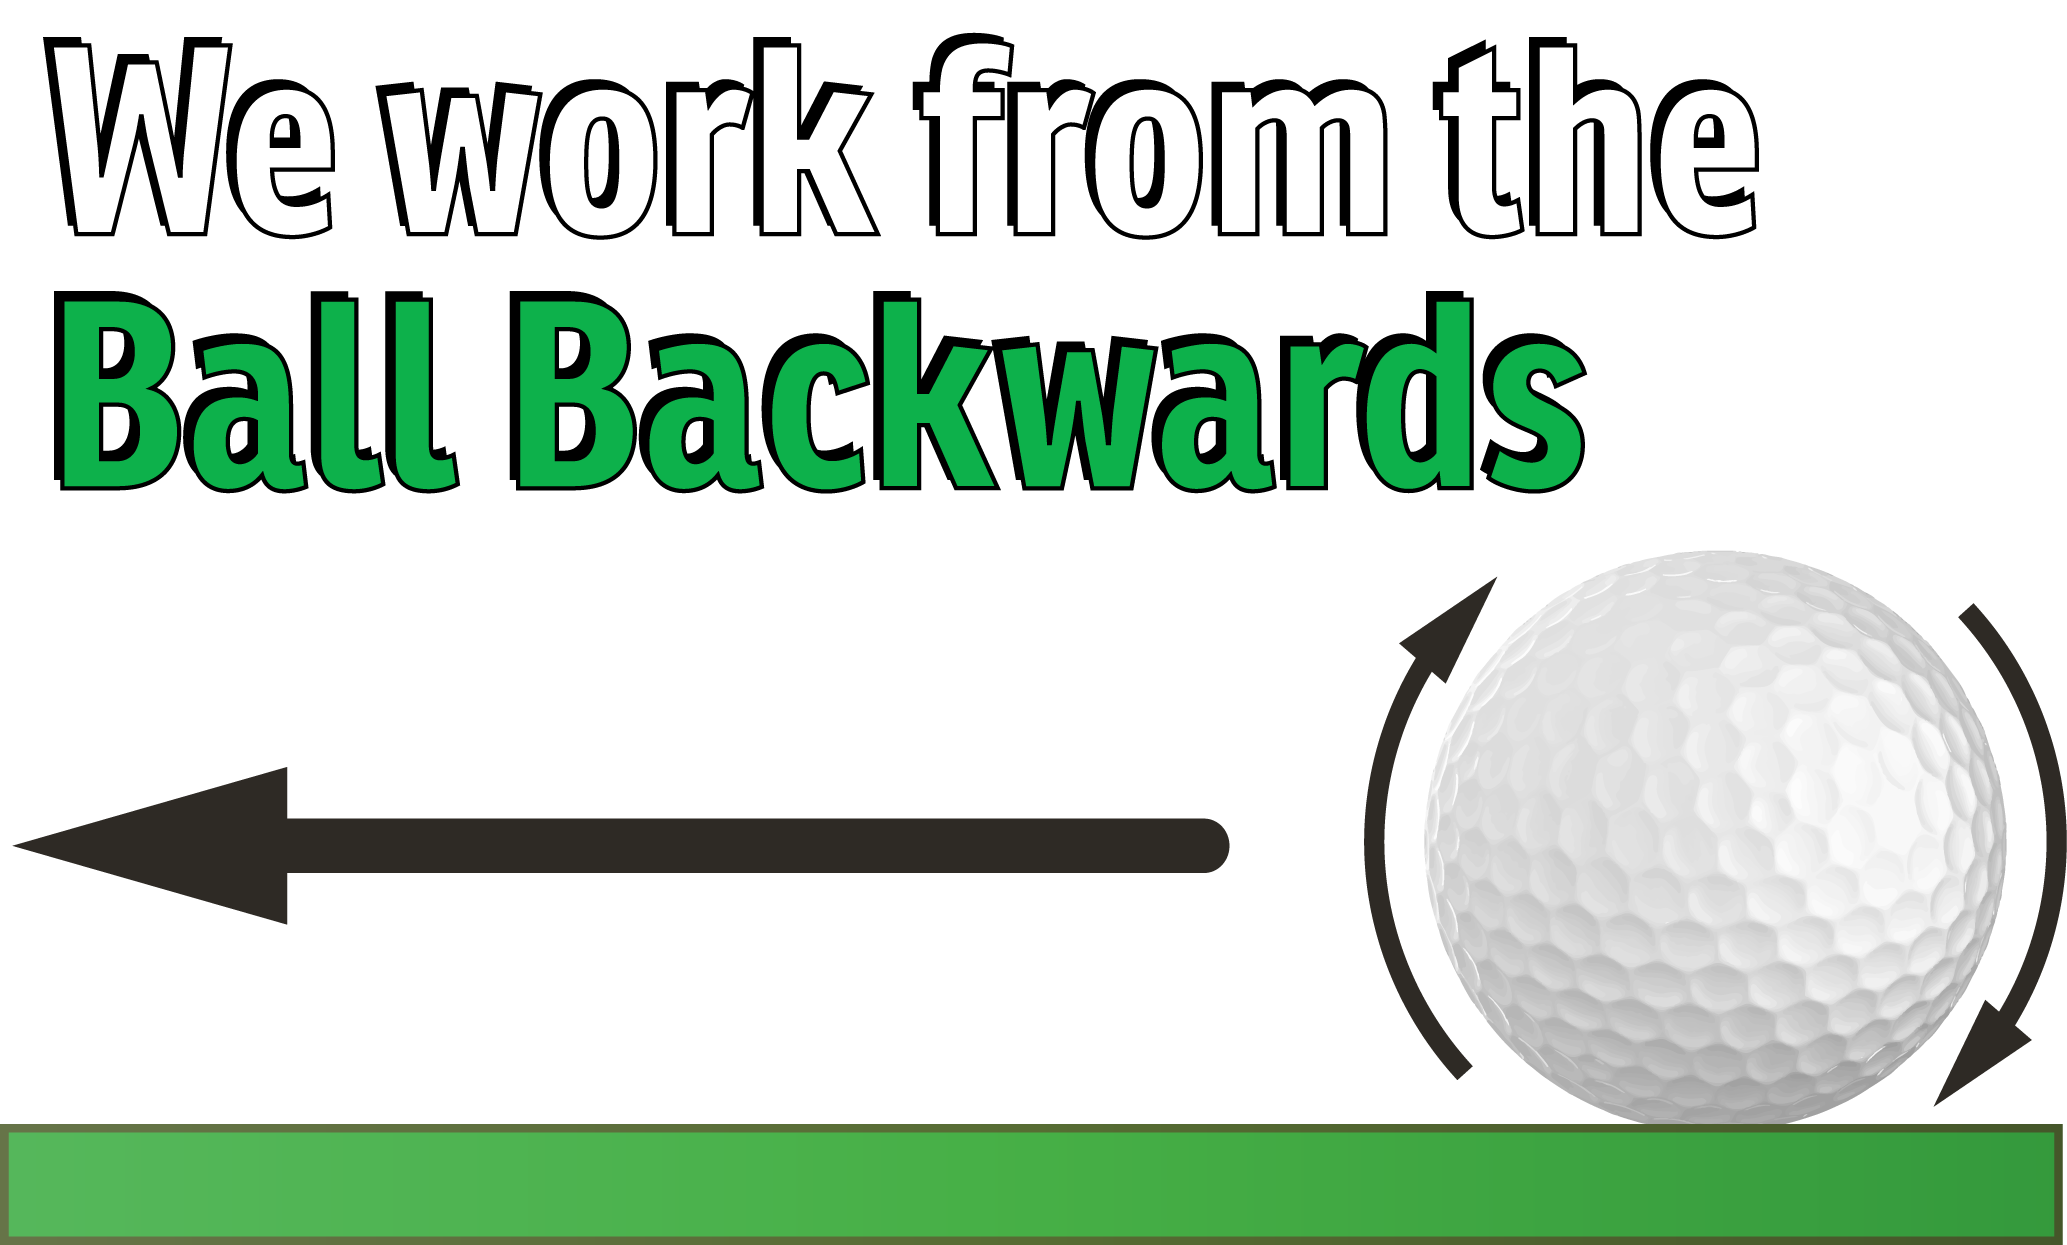 Ball Backwards_4